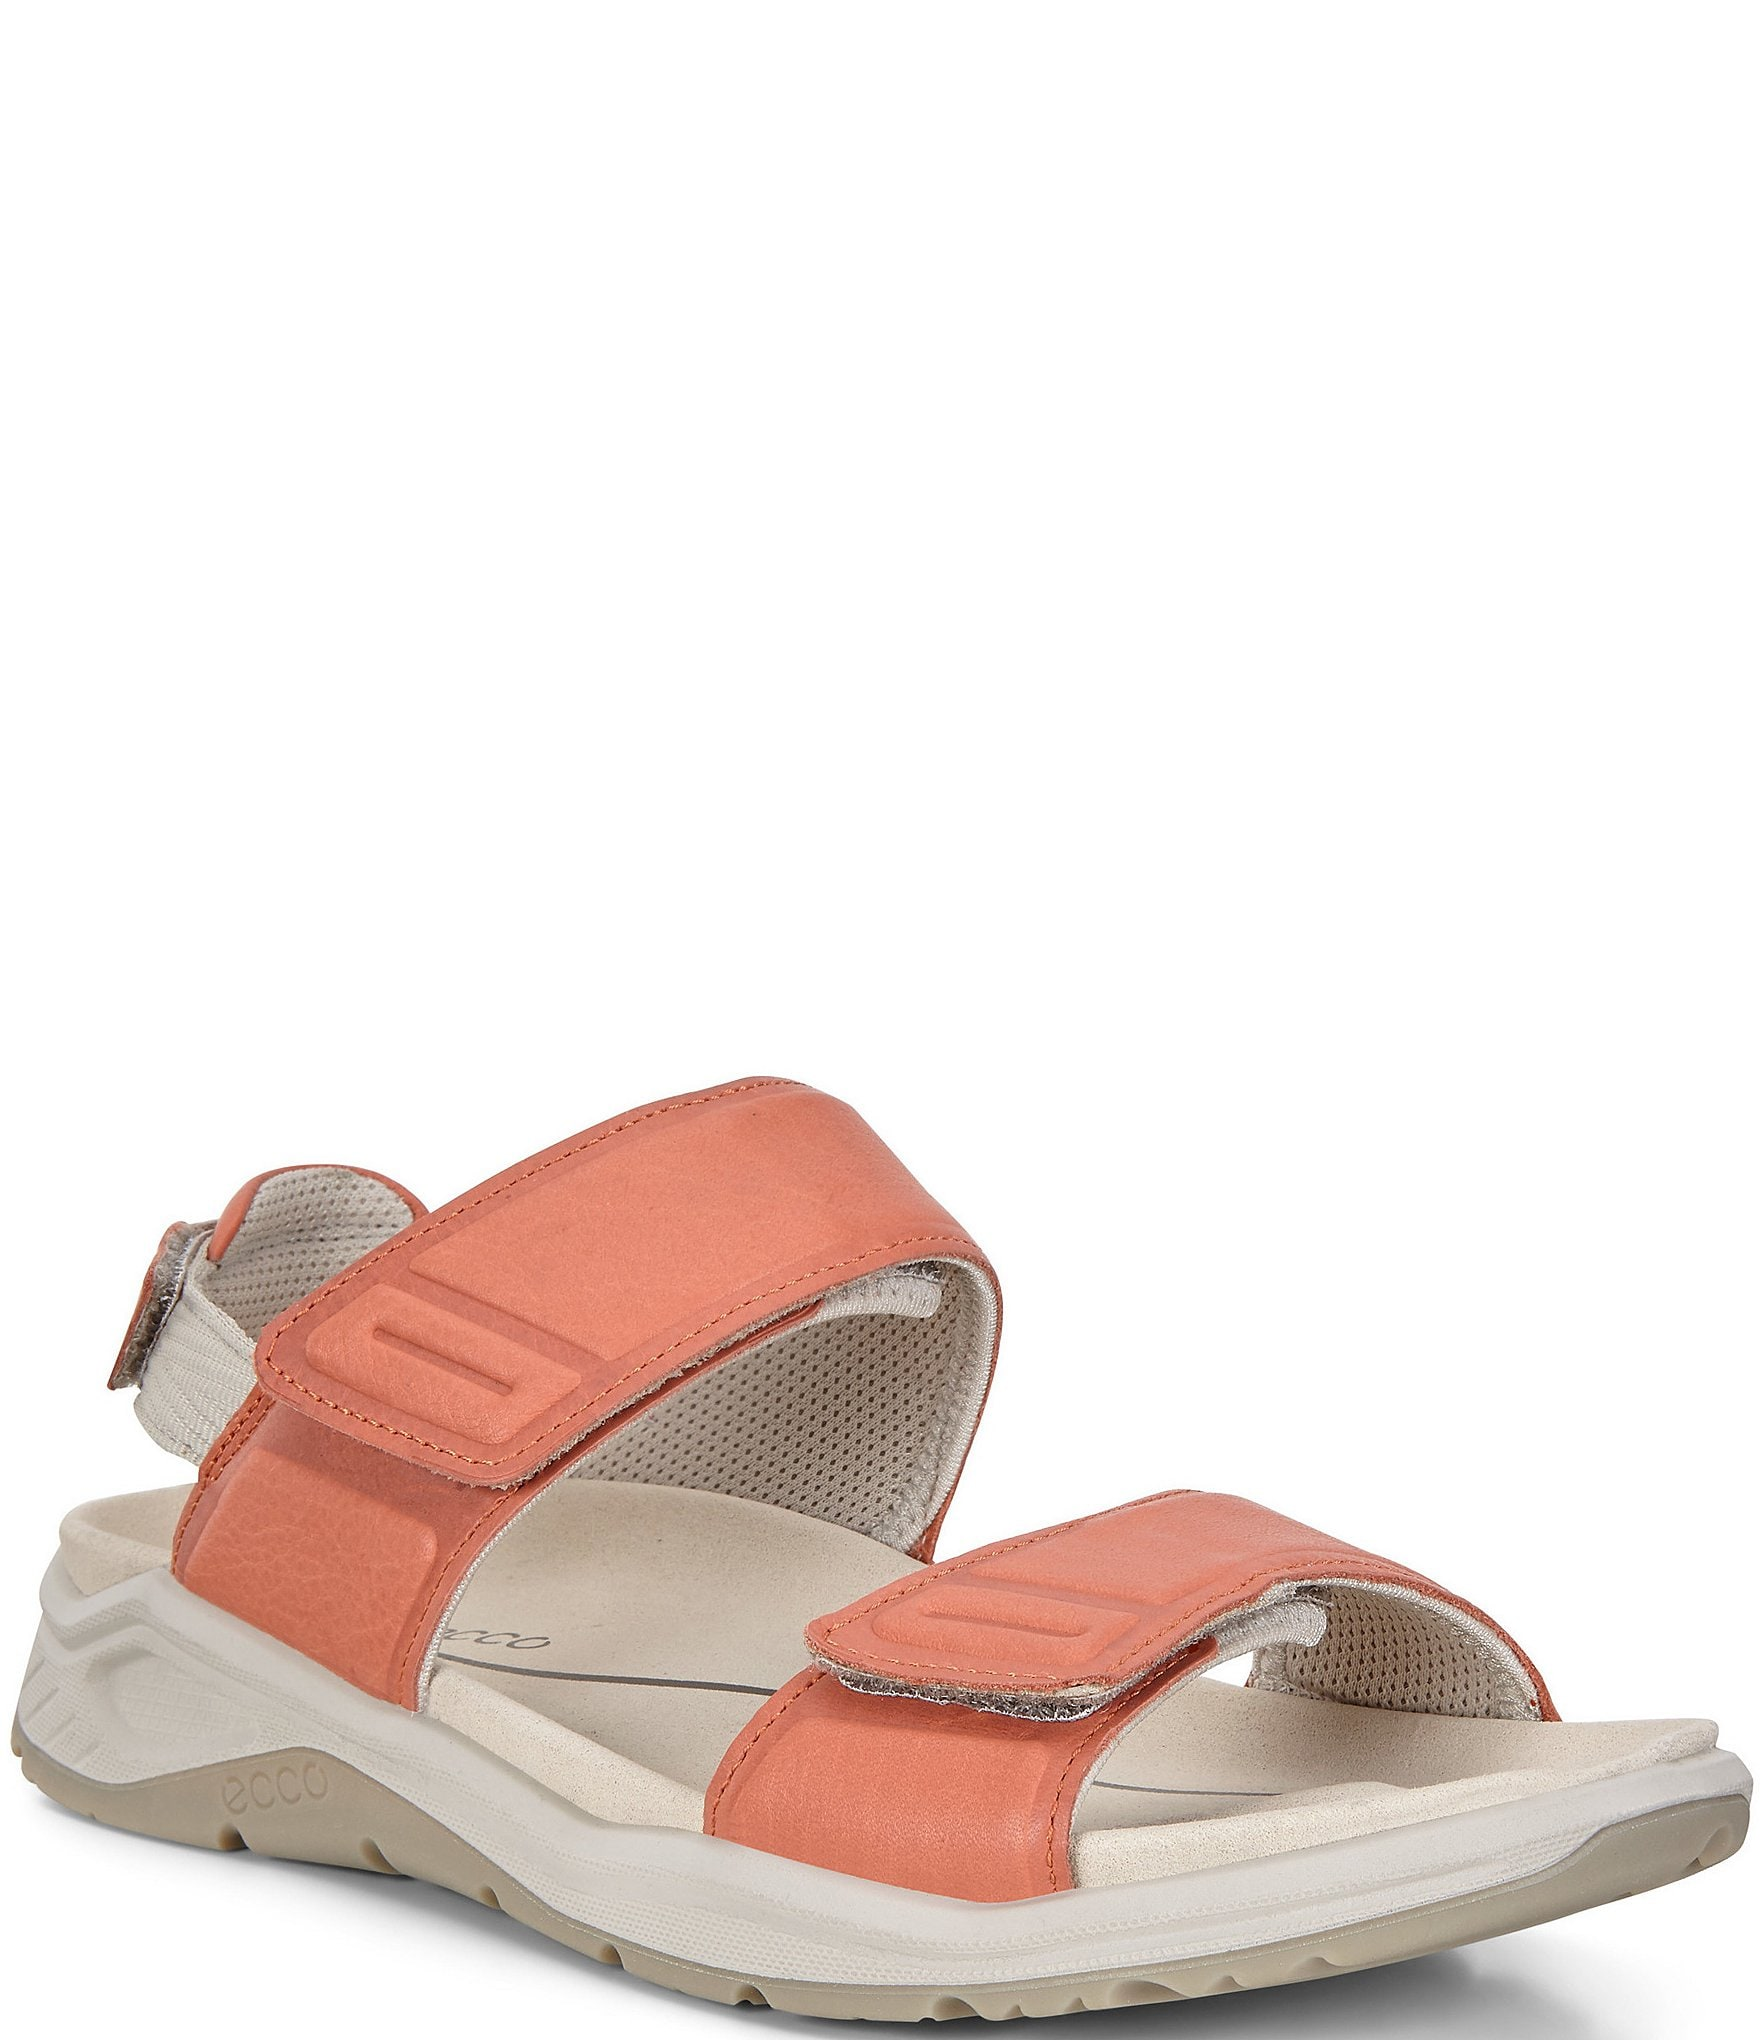 ECCO X Trinsic Leather Sandals